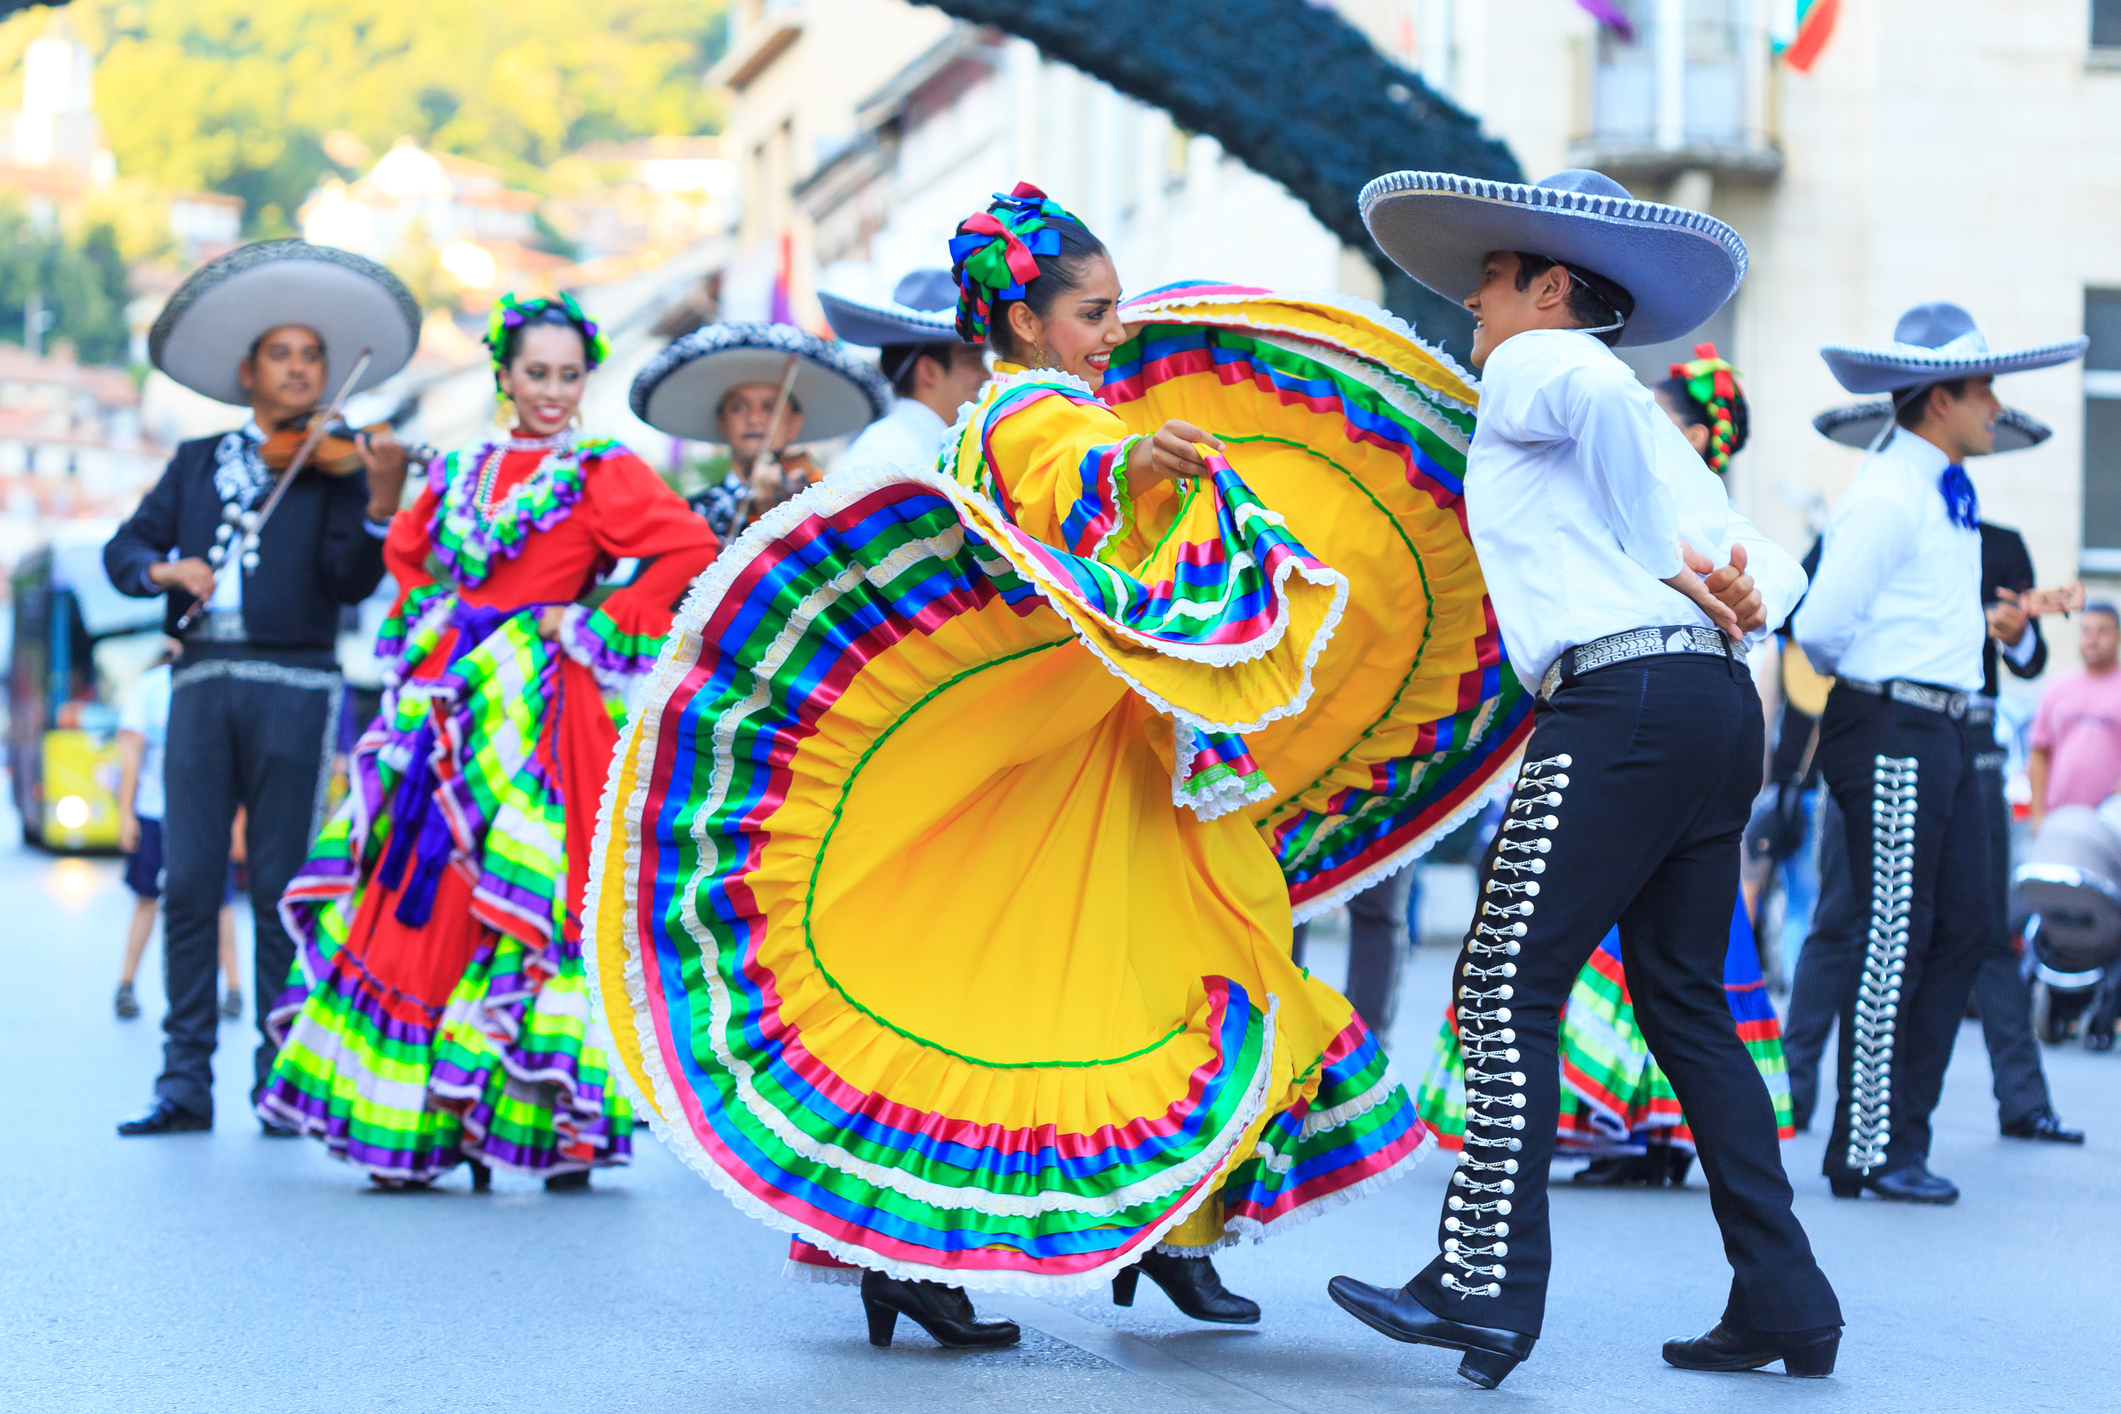 an overview of the typical rural mexican culture American culture is a diverse mix of customs and traditions from nearly every region of the world here is a brief overview of american holidays, food, clothing and more.